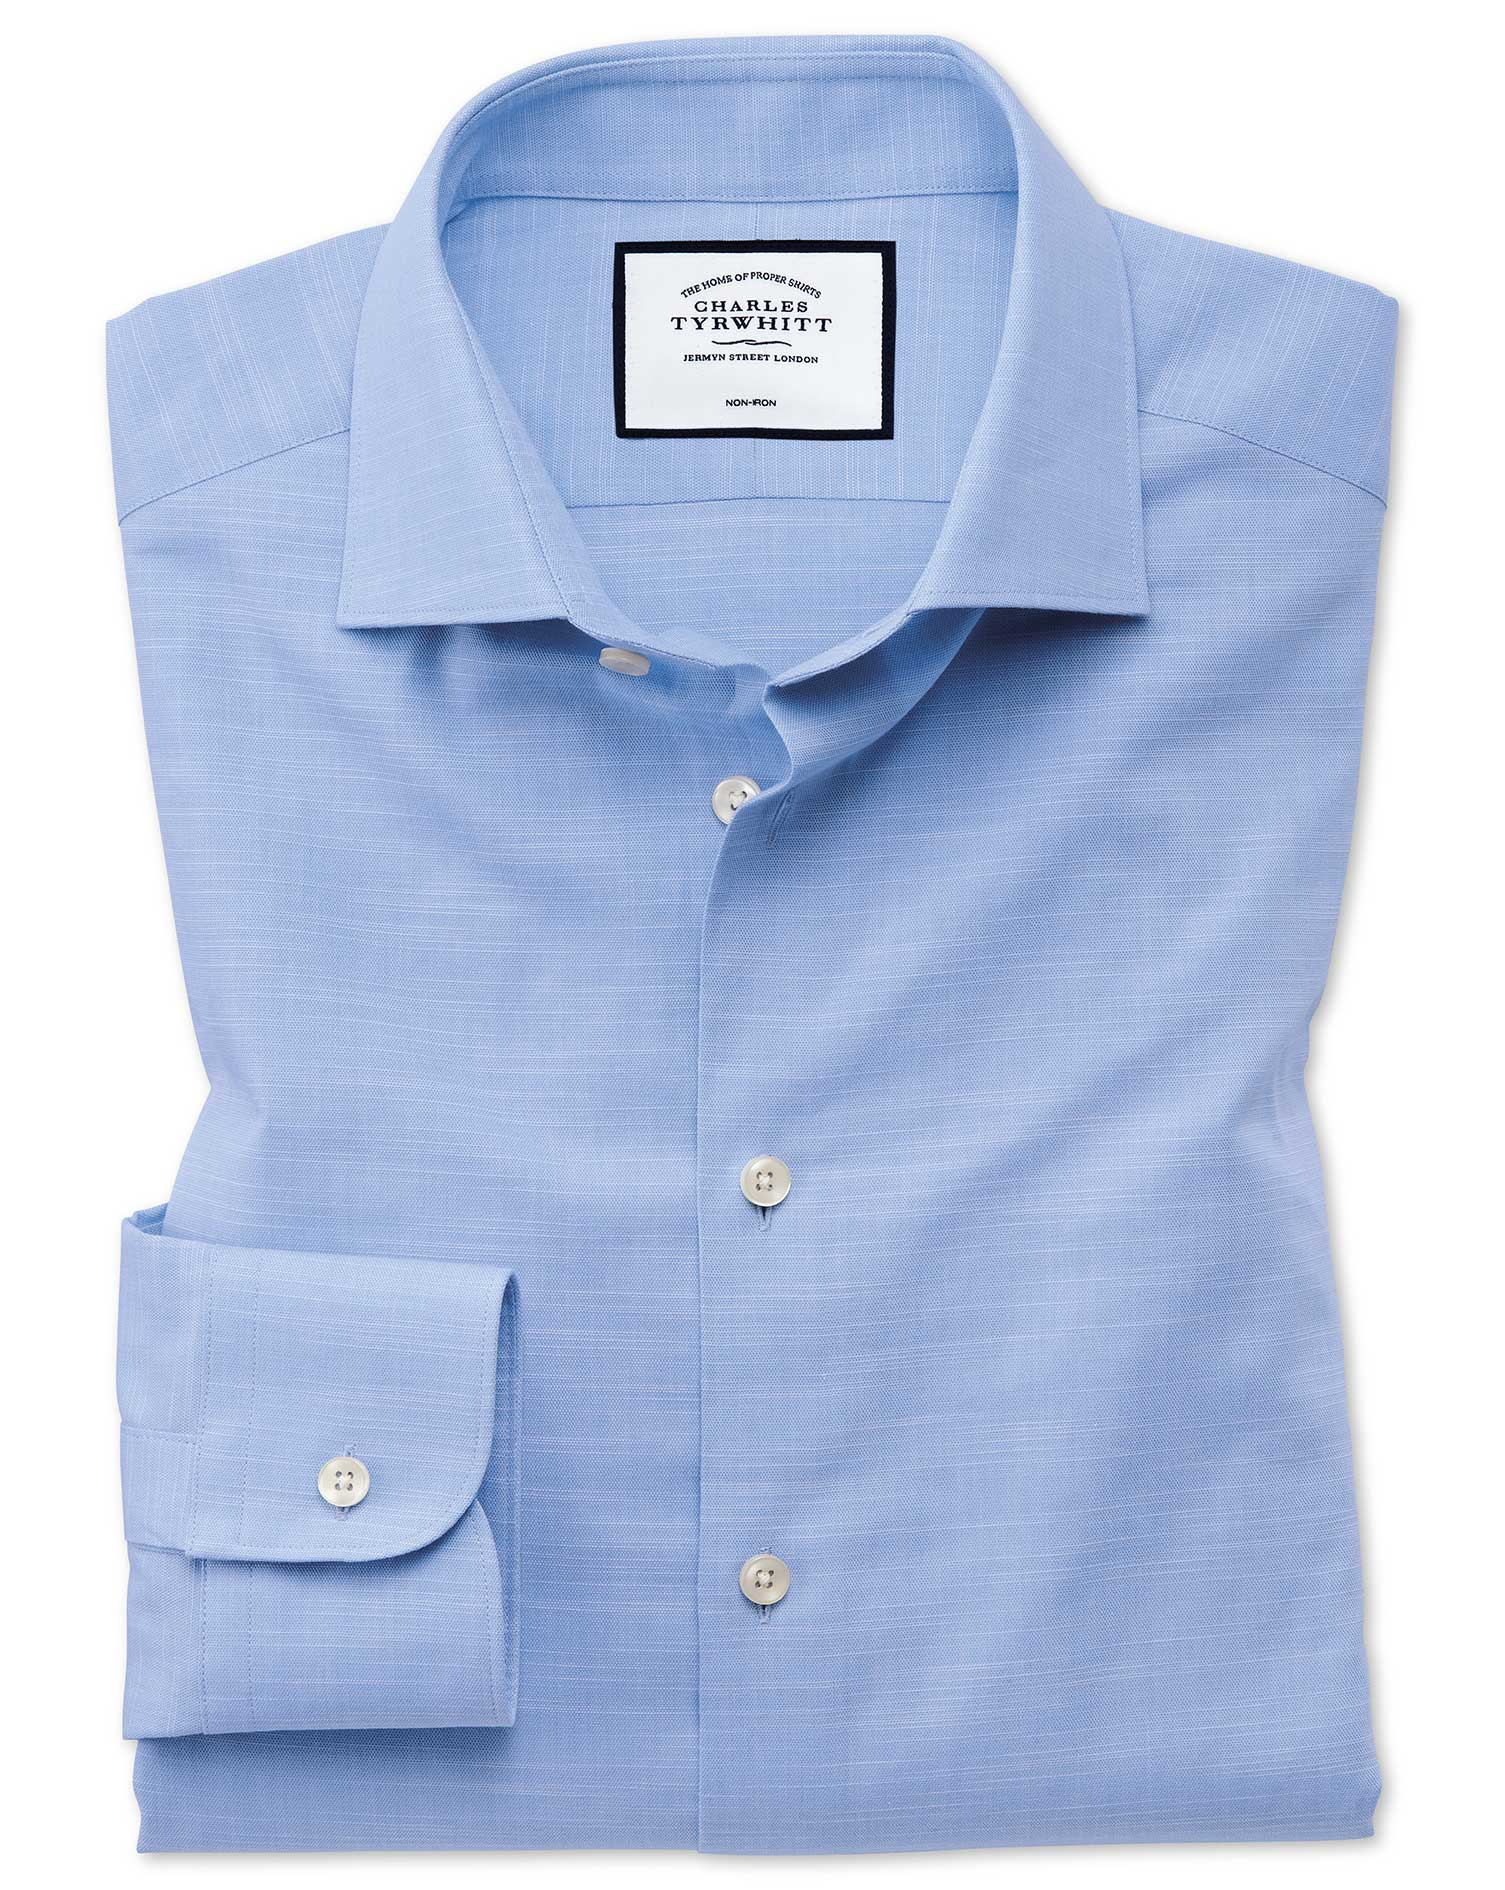 Extra Slim Fit Business Casual Egyptian Cotton Slub Sky Blue Formal Shirt Single Cuff Size 15/34 by